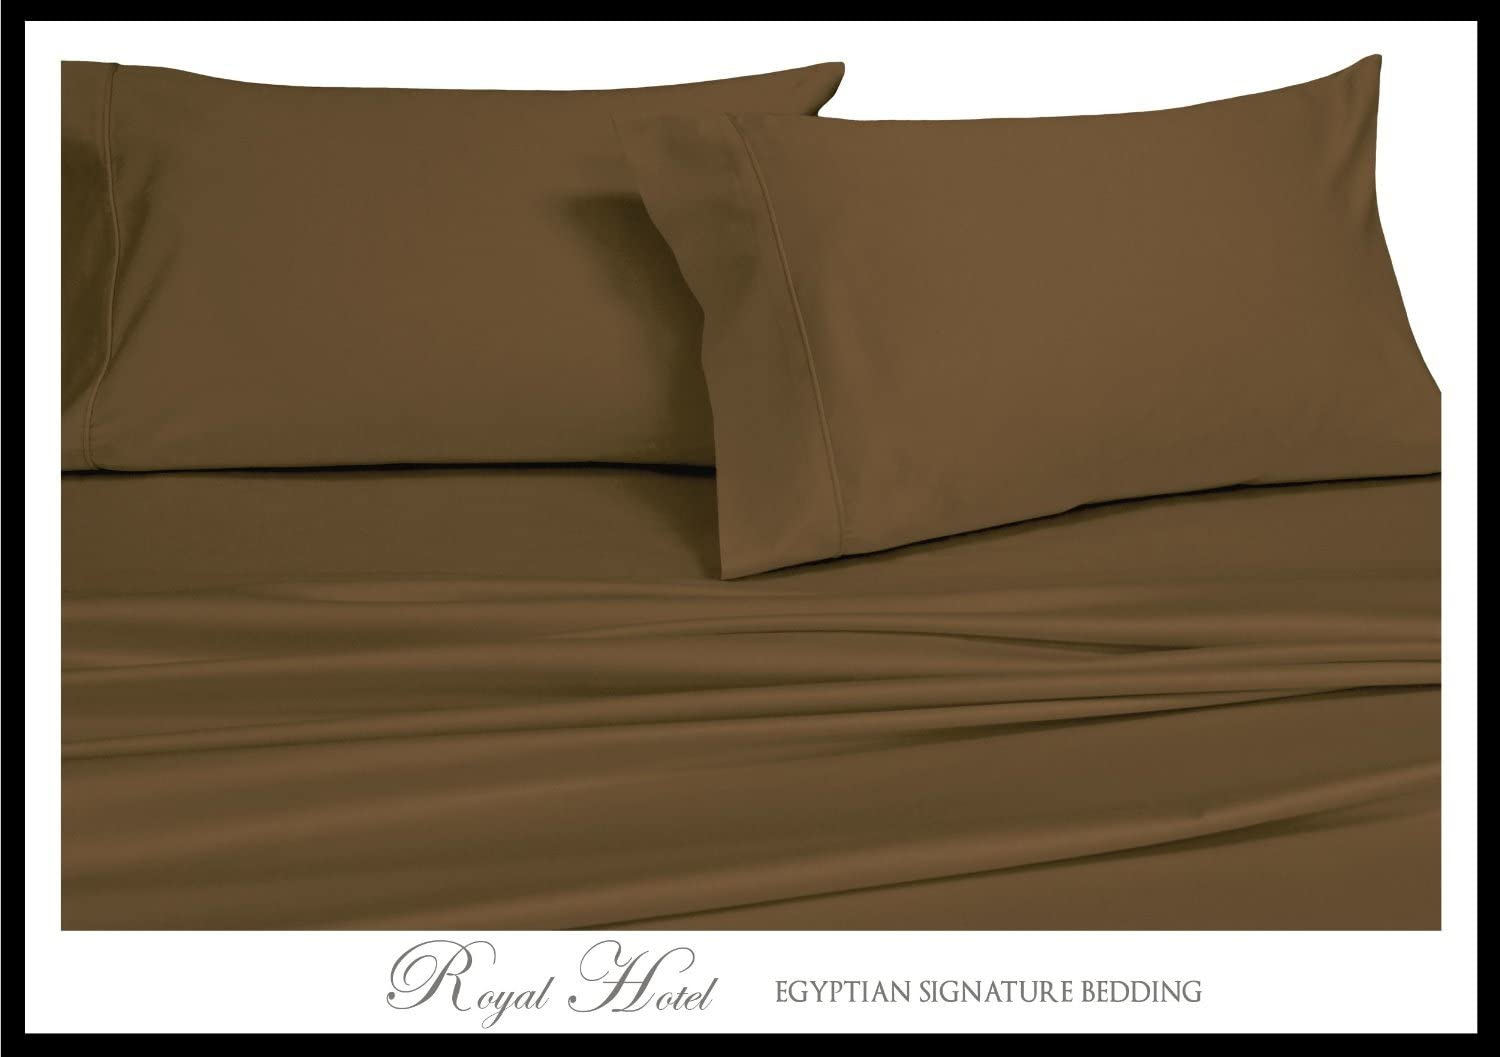 Royal Hotel Queen White Silky Soft sheets 100/% Viscose from Bamboo Sheet Set